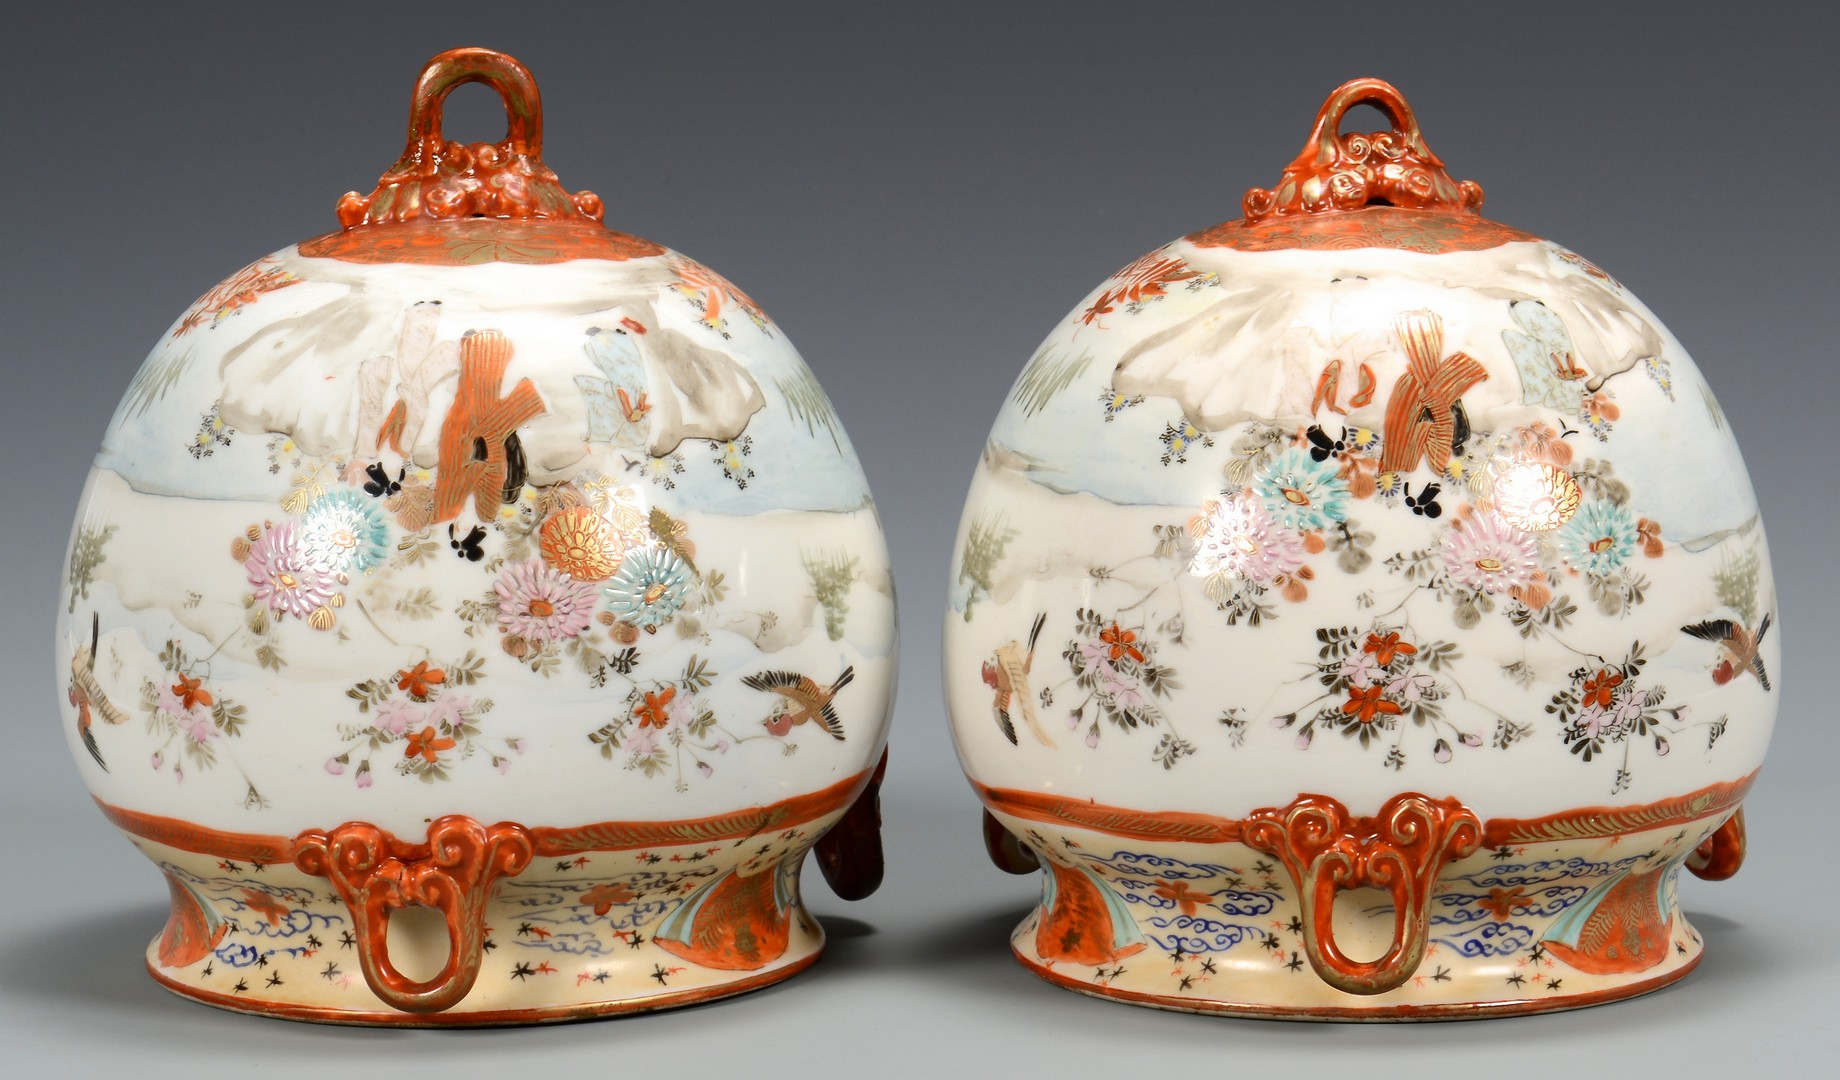 Lot 719: 4 Japanese items: 2 vases, 2 Femers